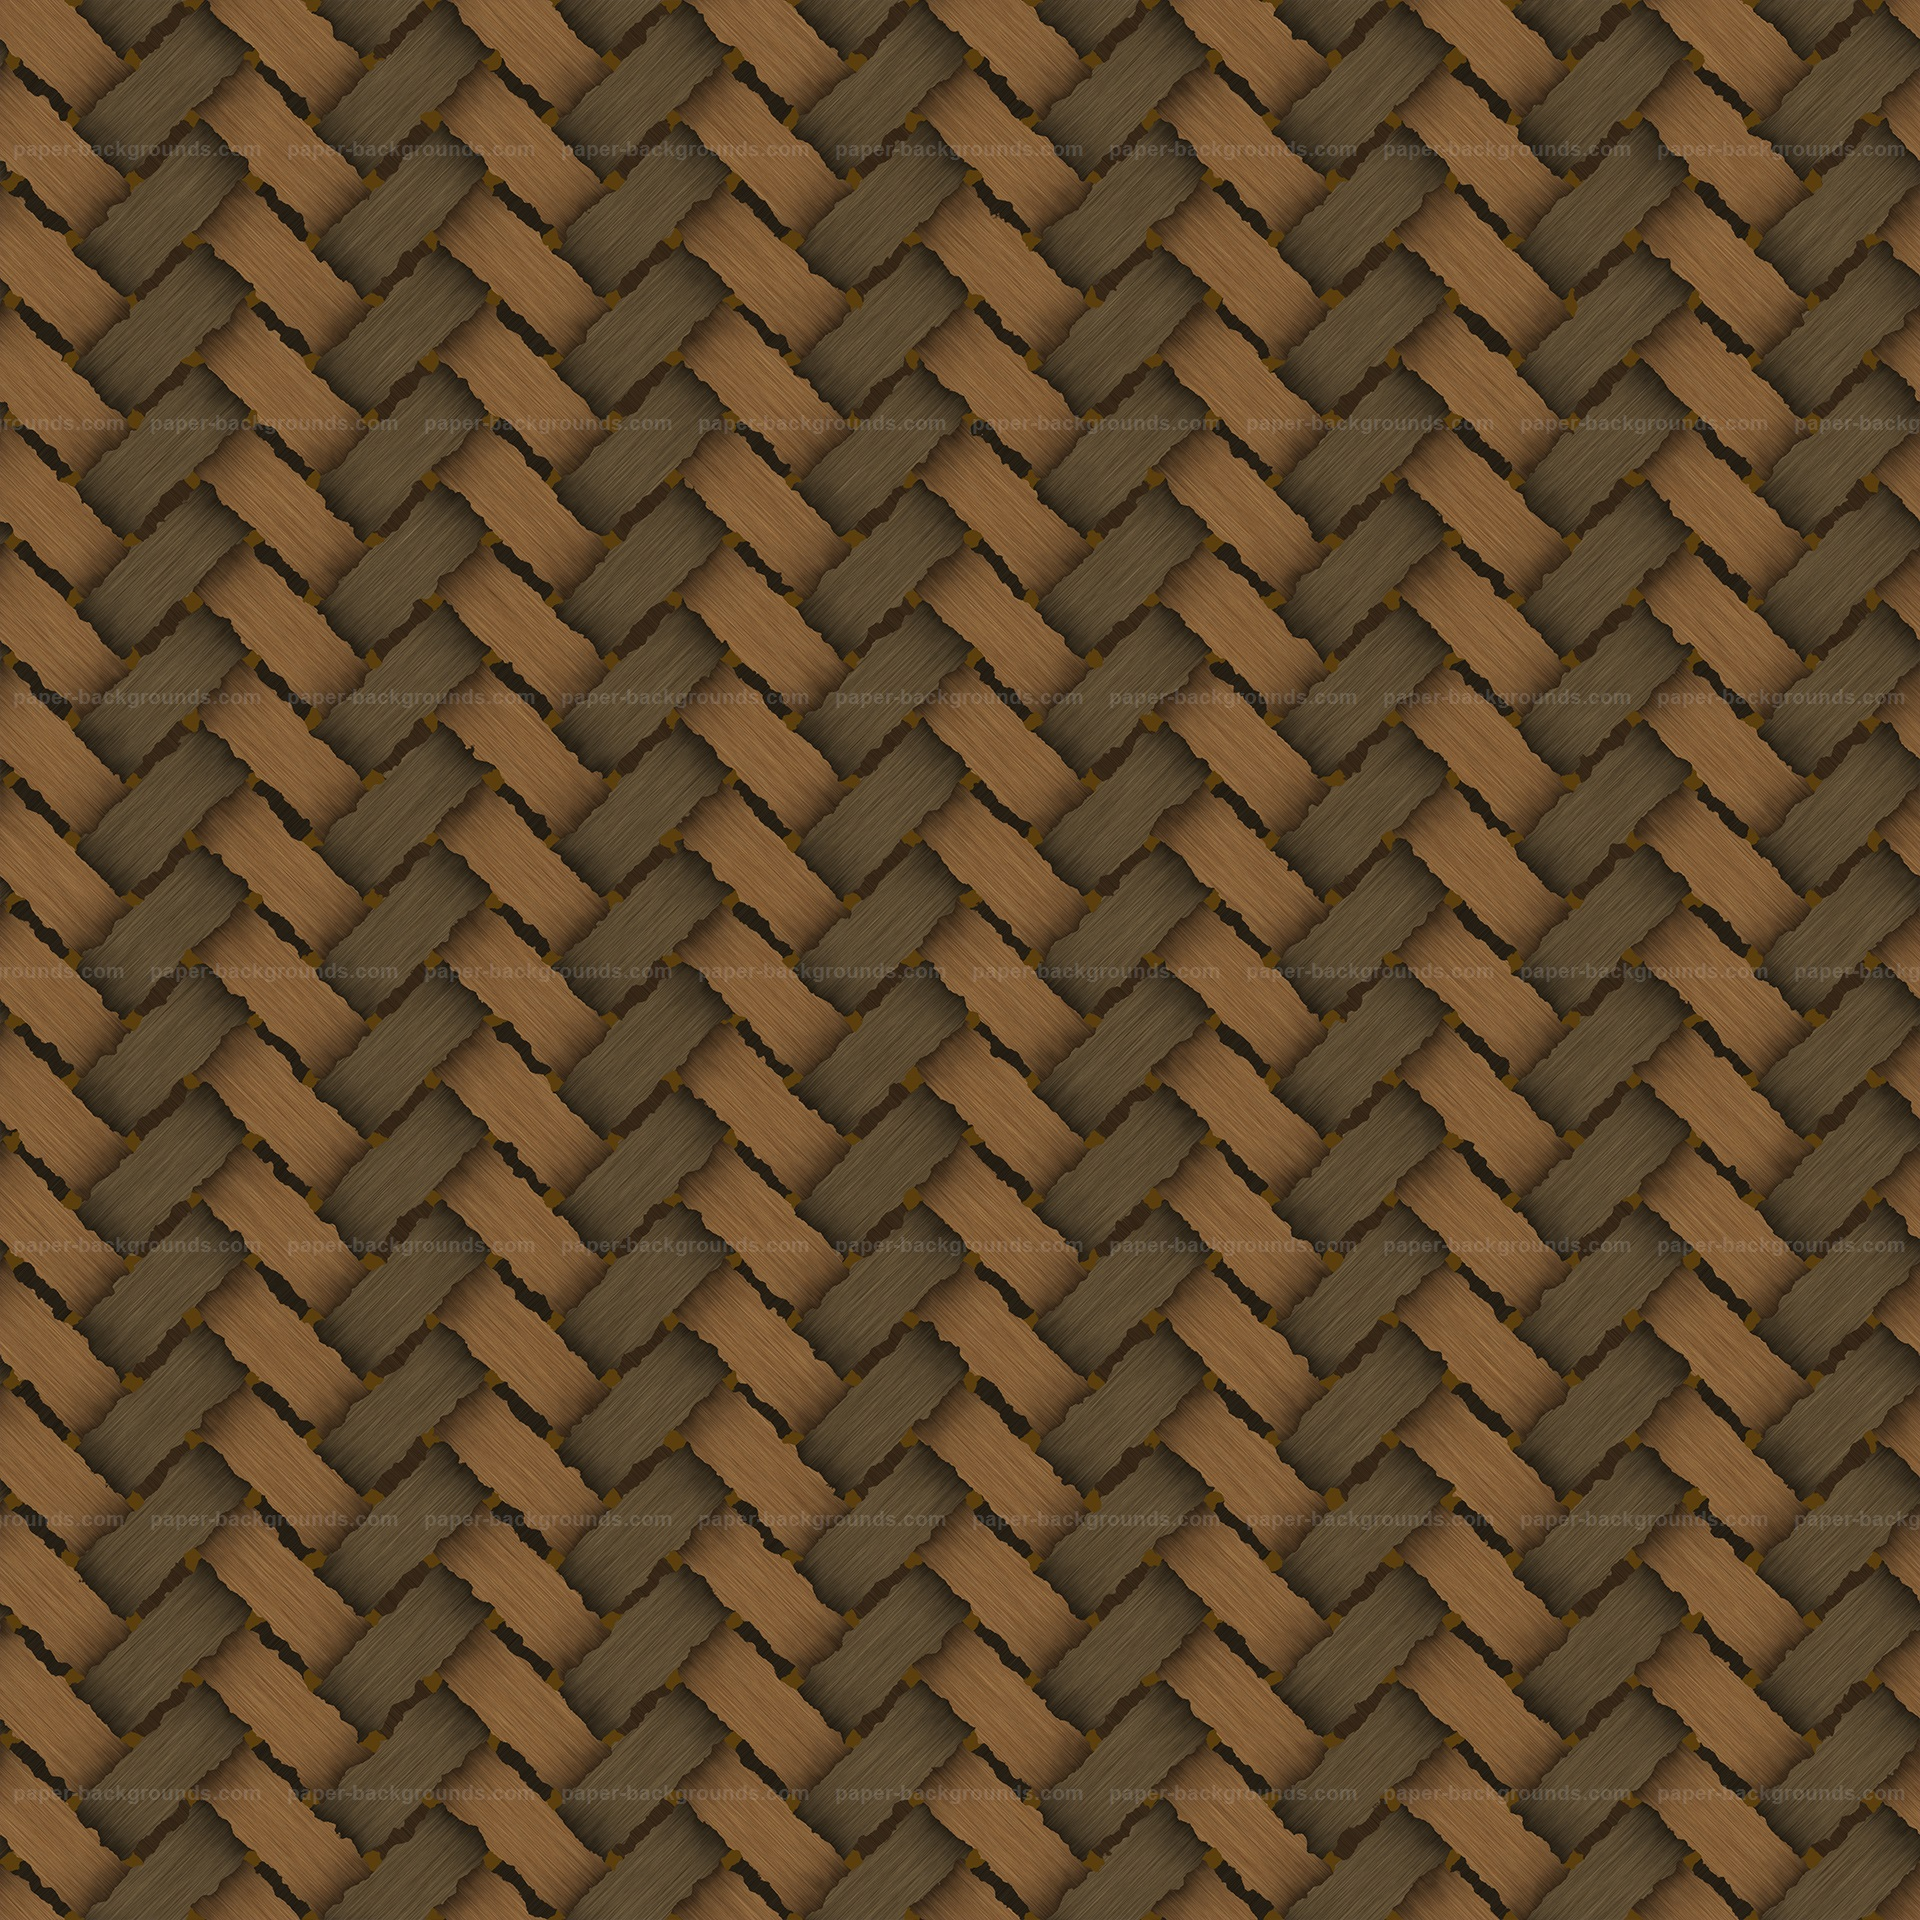 Brown bed sheet textures - Seamless Brown Wood Twines Texture Hd